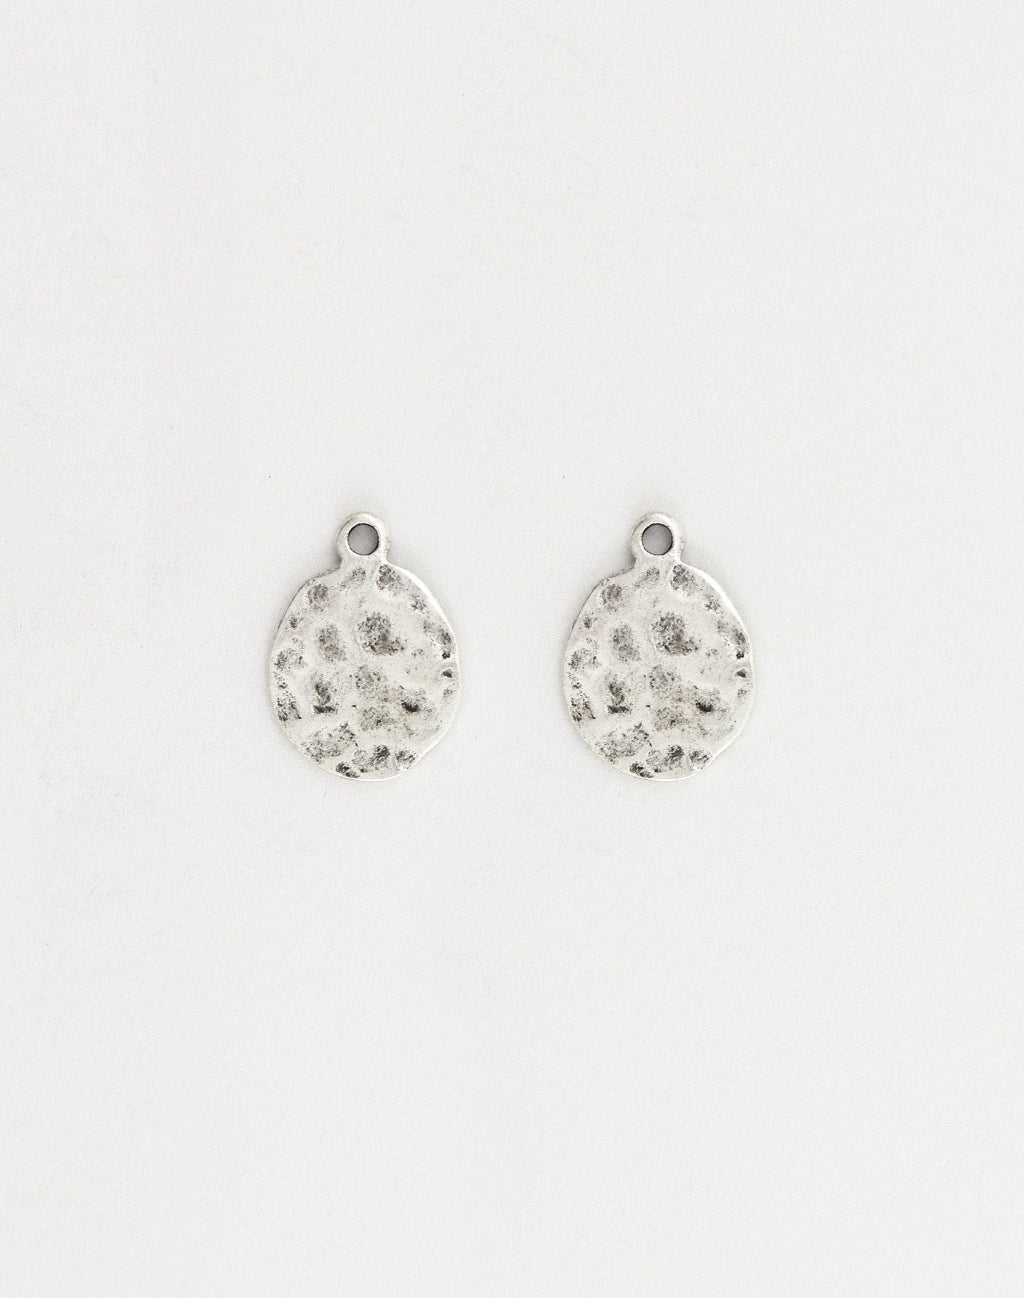 Hammered Oval, 18x13mm, (2pcs)